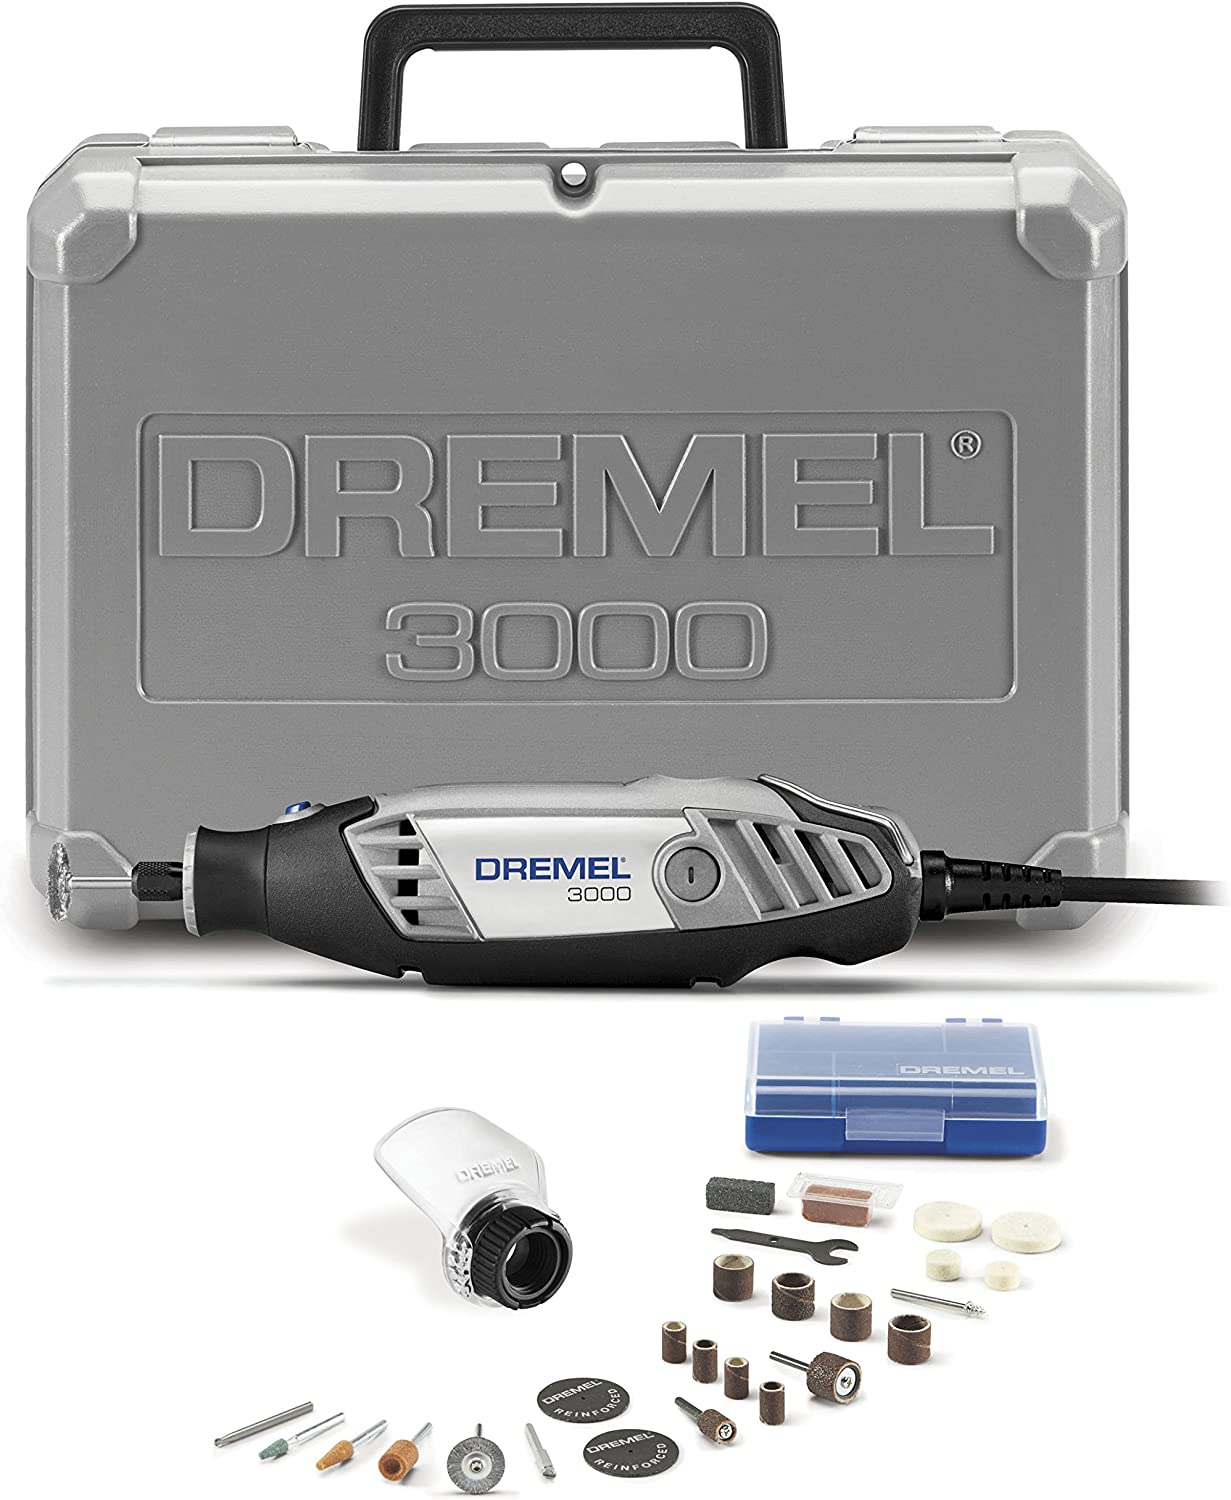 2. Dremel 3000-1/25 Variable Speed Rotary Tool Kit